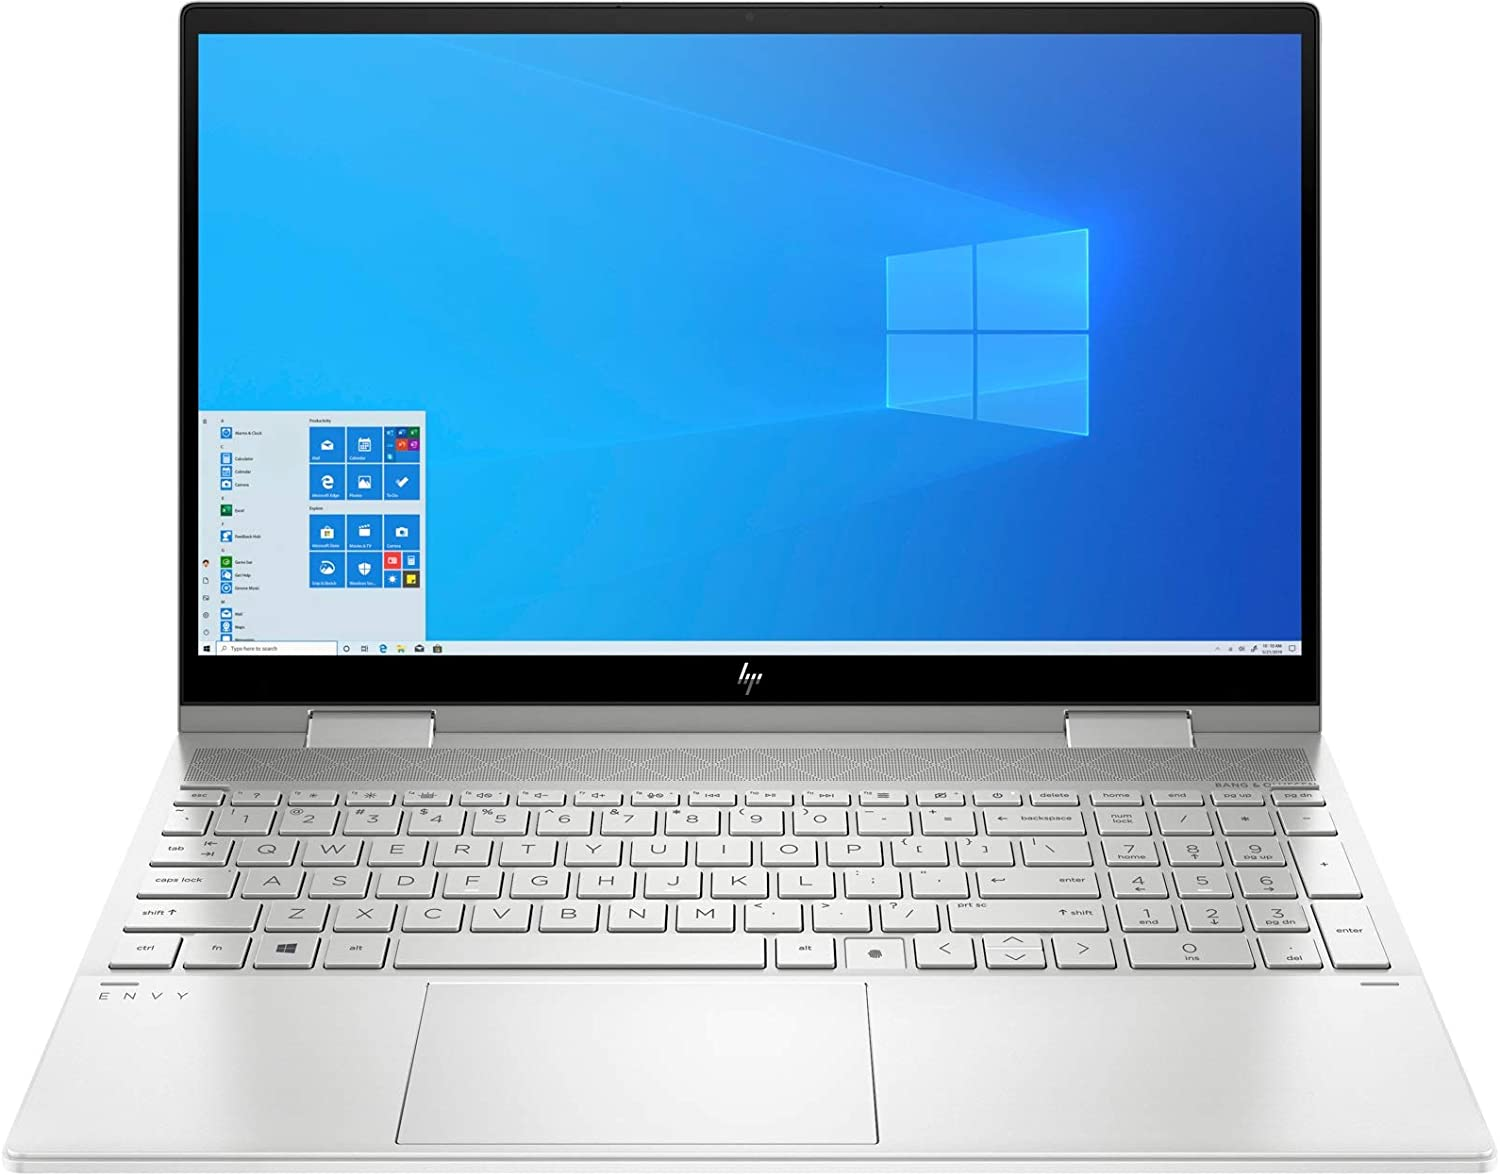 """CUK Envy x360 15t 15 Inch Touch Business Laptop (Intel Core i7, 32GB RAM, 1TB NVMe SSD, 15.6"""" FHD IPS Touchscreen, Windows 10 Pro) Professional Notebook Computer (Made_by_HP)"""